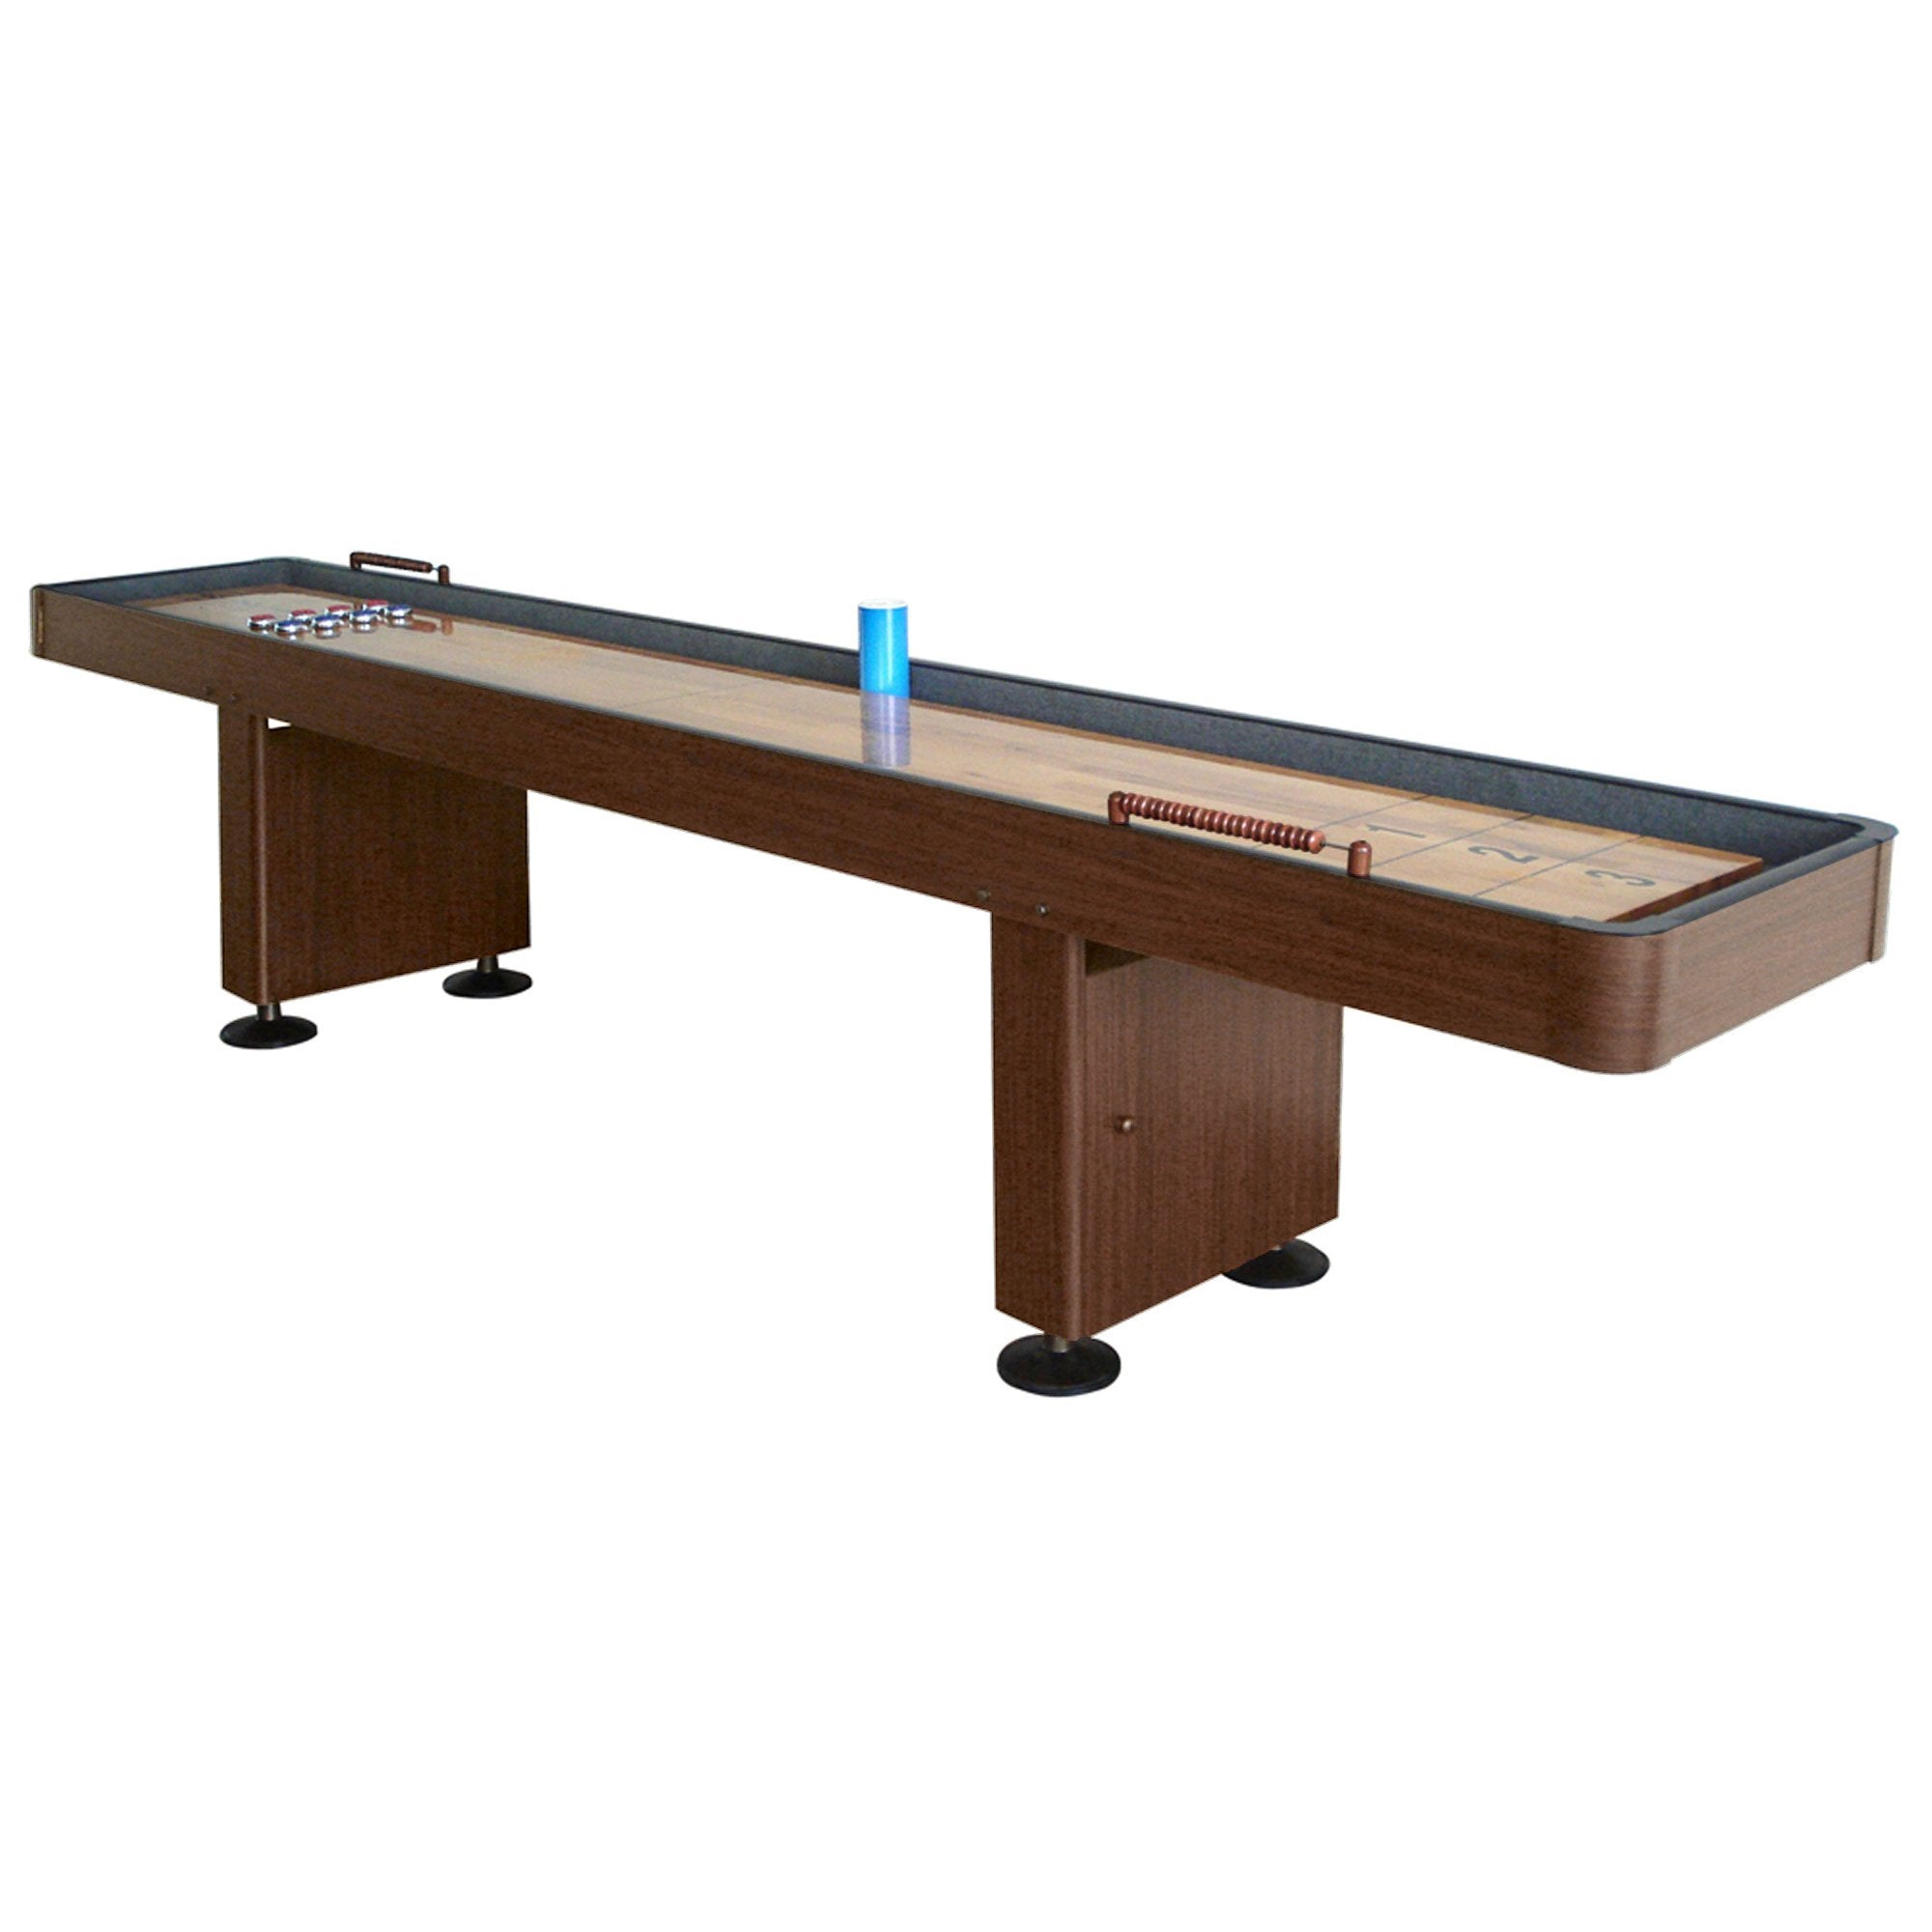 Hathaway Challenger Walnut 9ft Shuffleboard Table - Gaming Blaze